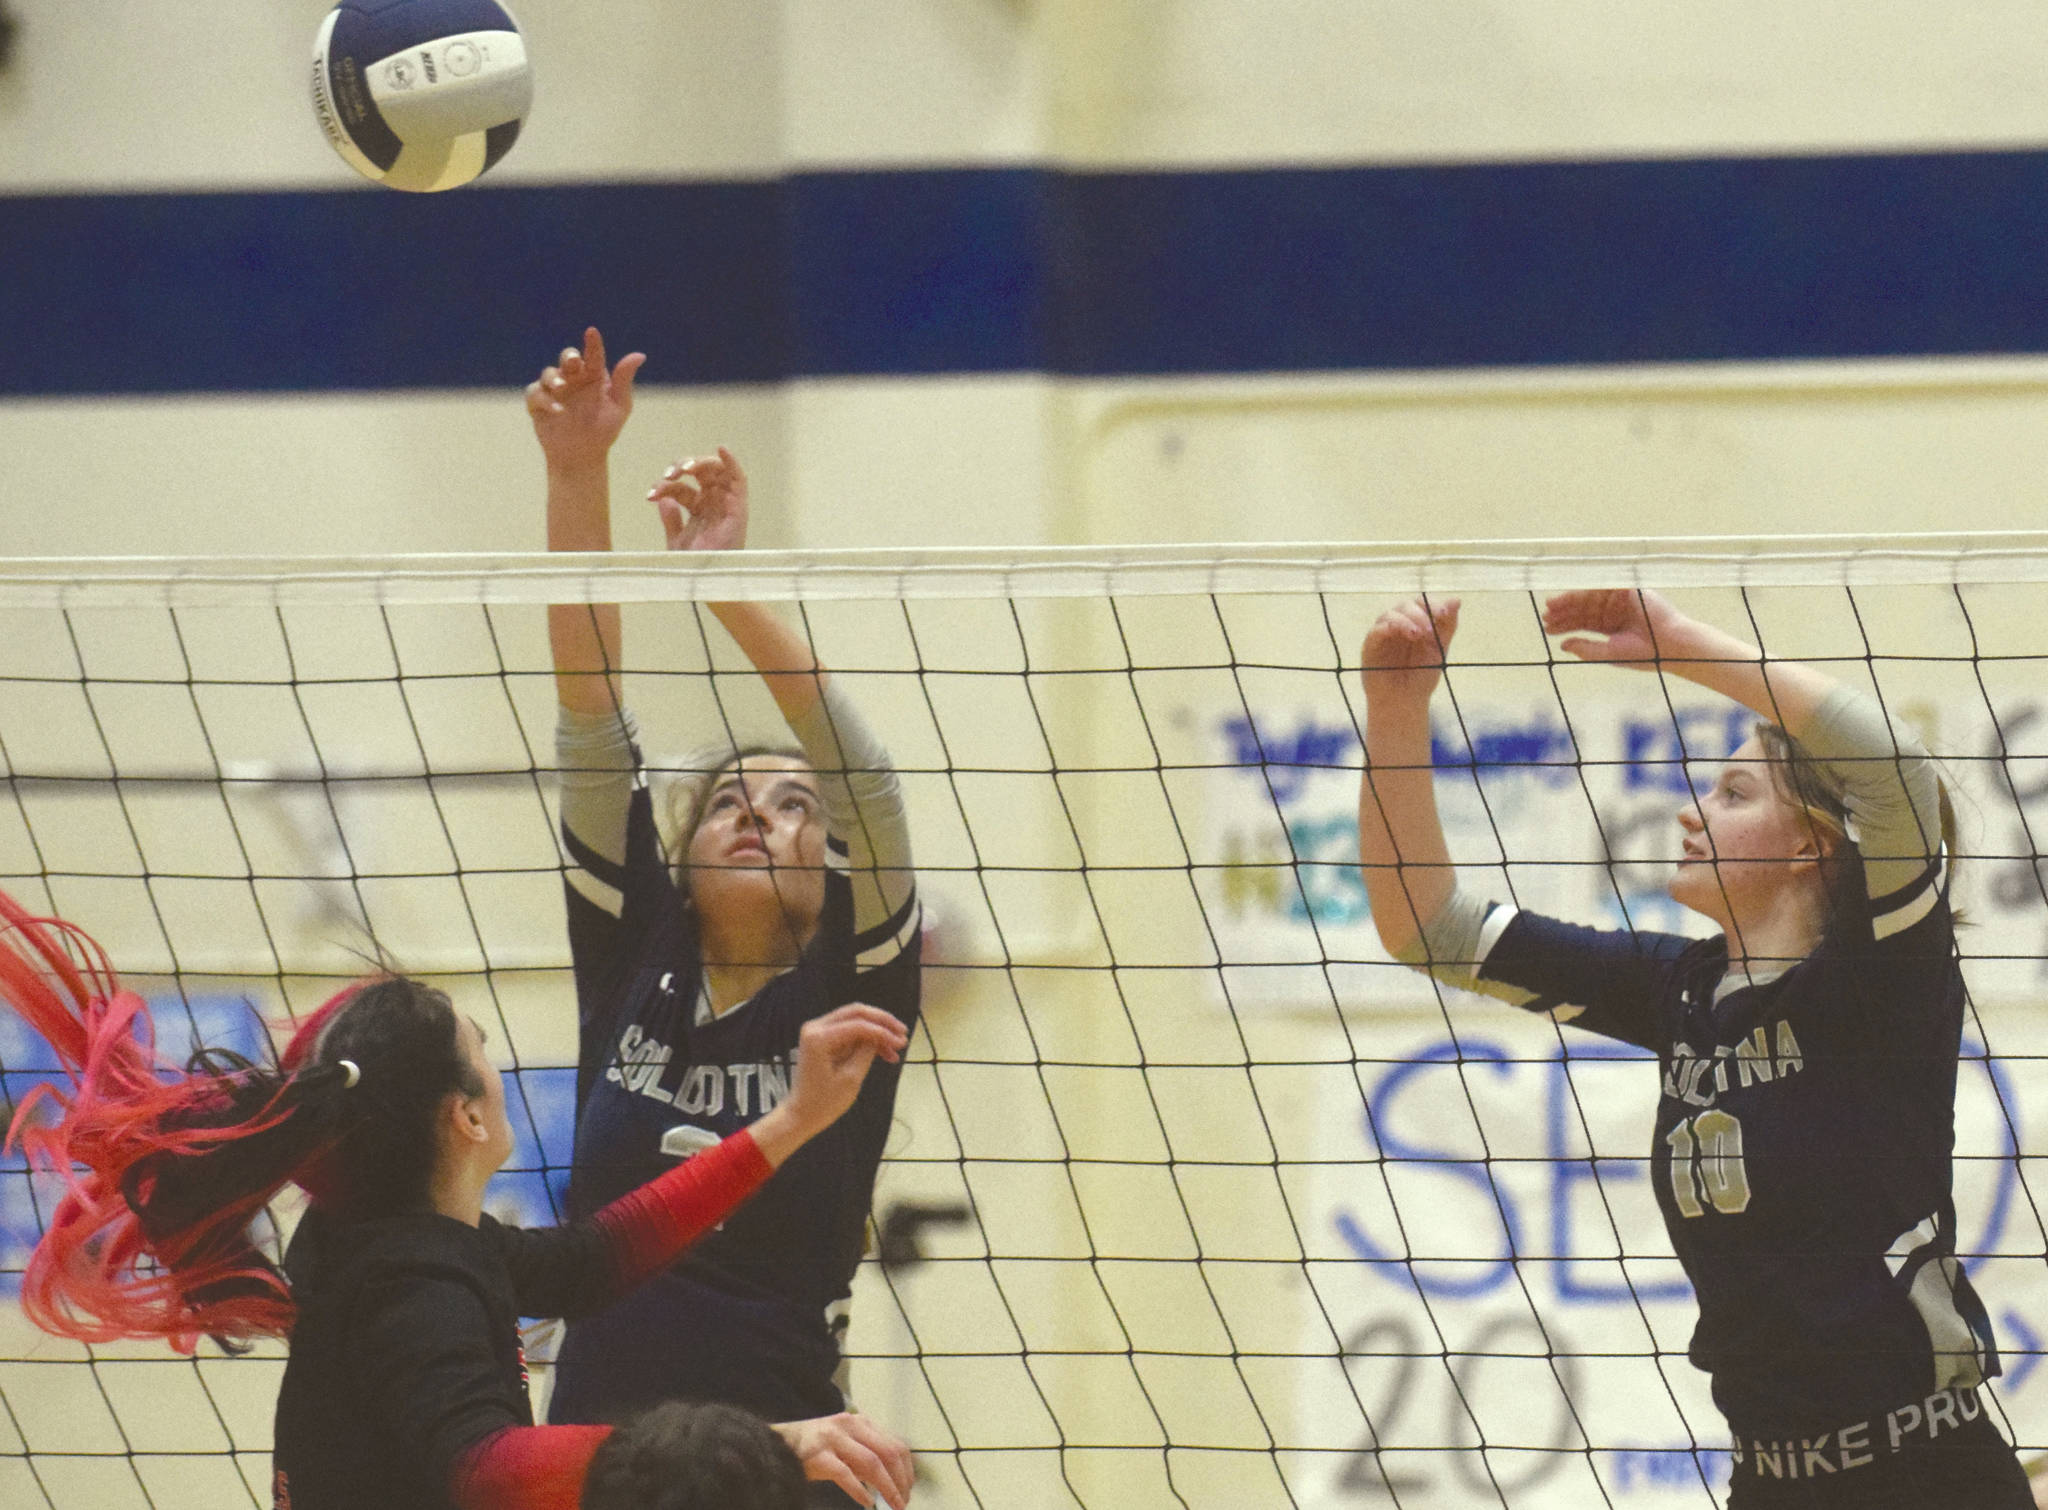 Soldotna's Sierra Kuntz and Bethany Richmond put up a block on Kenai Central's Andie Galloway on Friday, Sept. 25, 2020, at Soldotna High School in Soldotna, Alaska. (Photo by Jeff Helminiak/Peninsula Clarion)